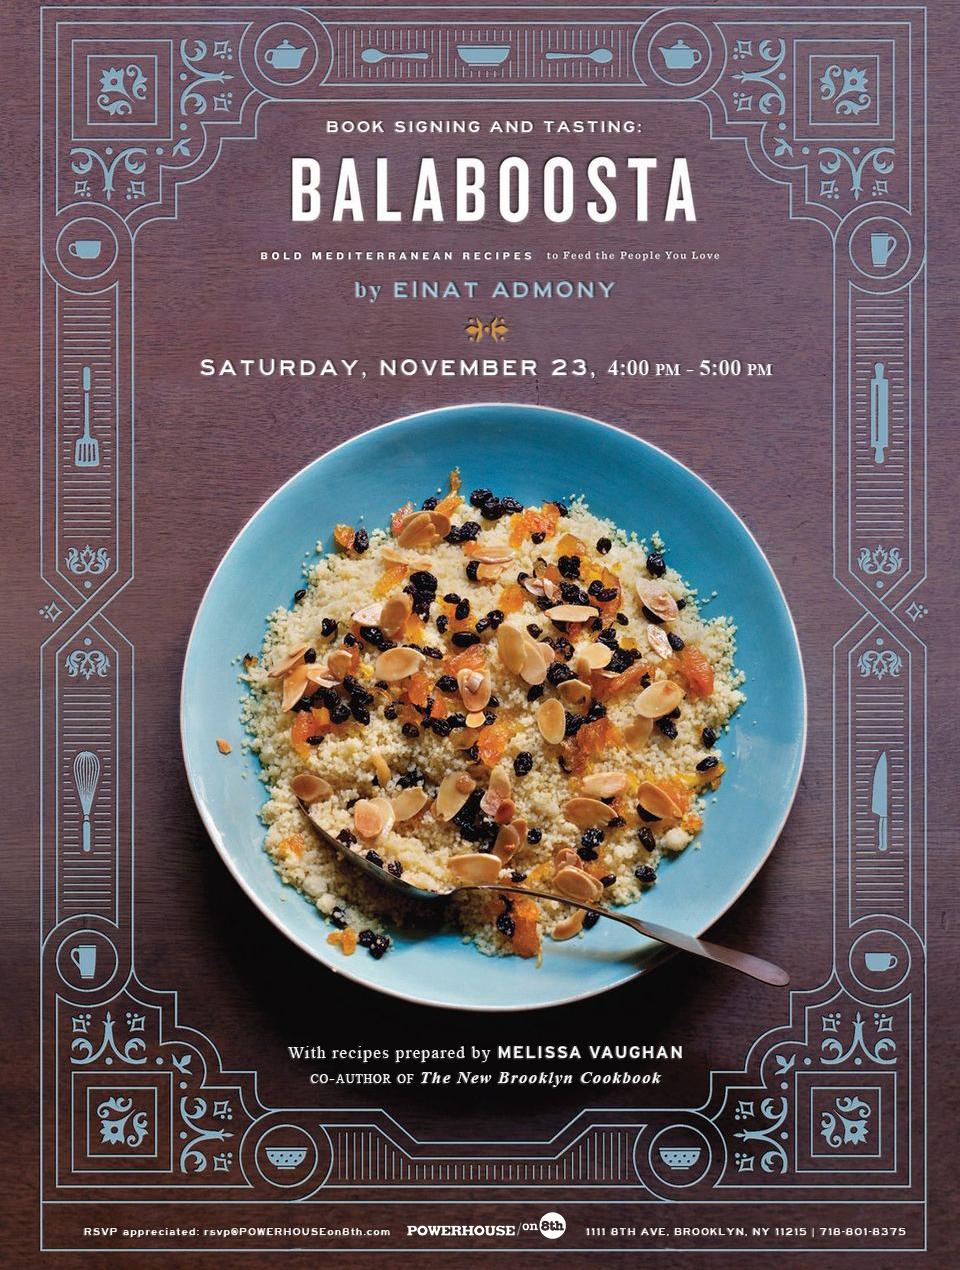 Cookbook Tasting Series with Melissa Vaughan: BALABOOSTA by Einat Admony